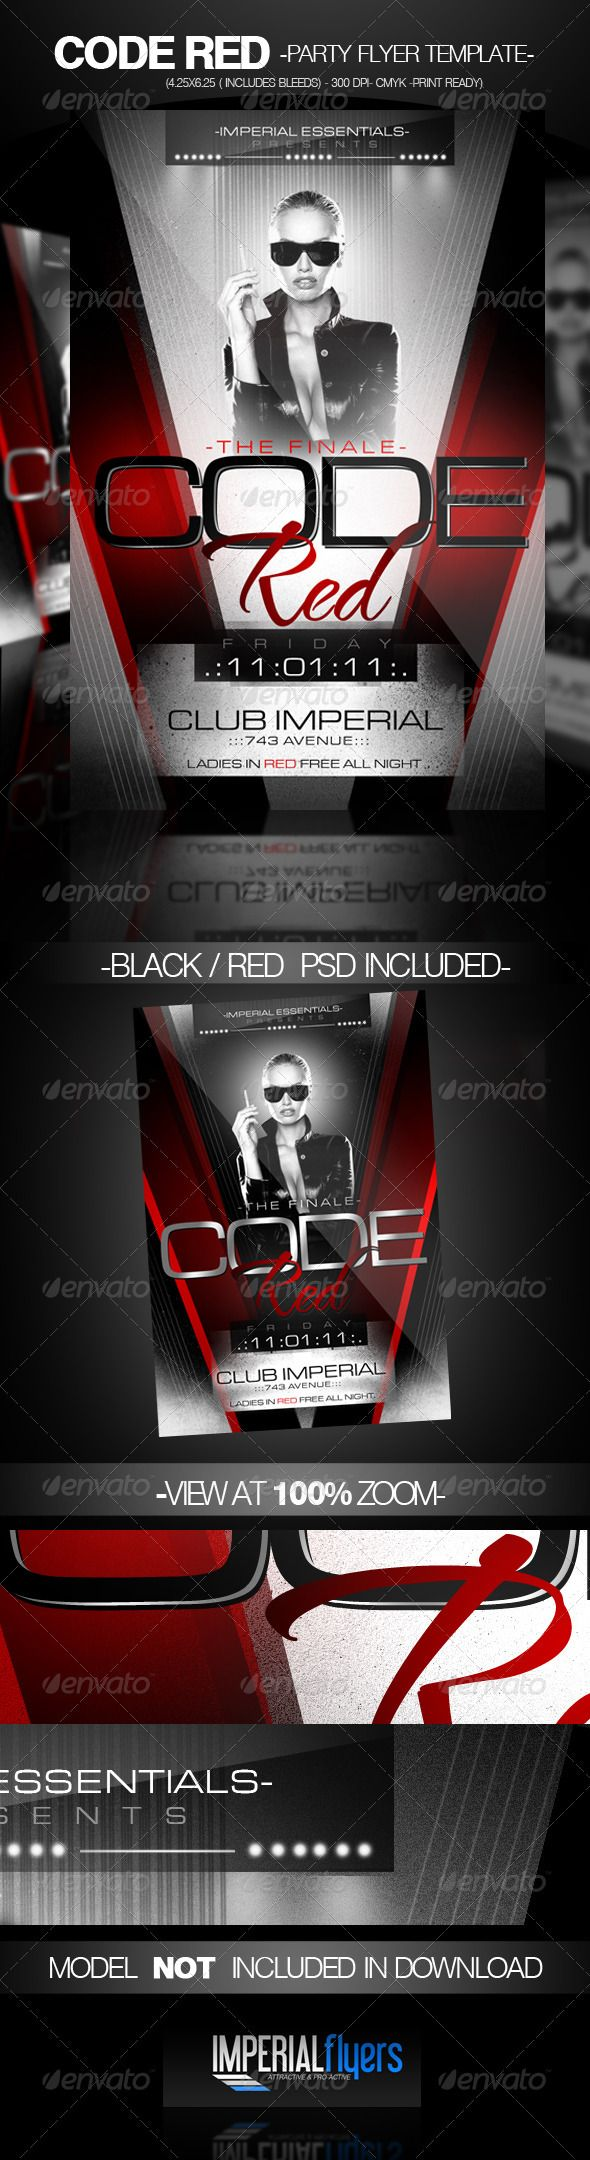 Code Red Party Flyer  Party Flyer Flyer Template And Template